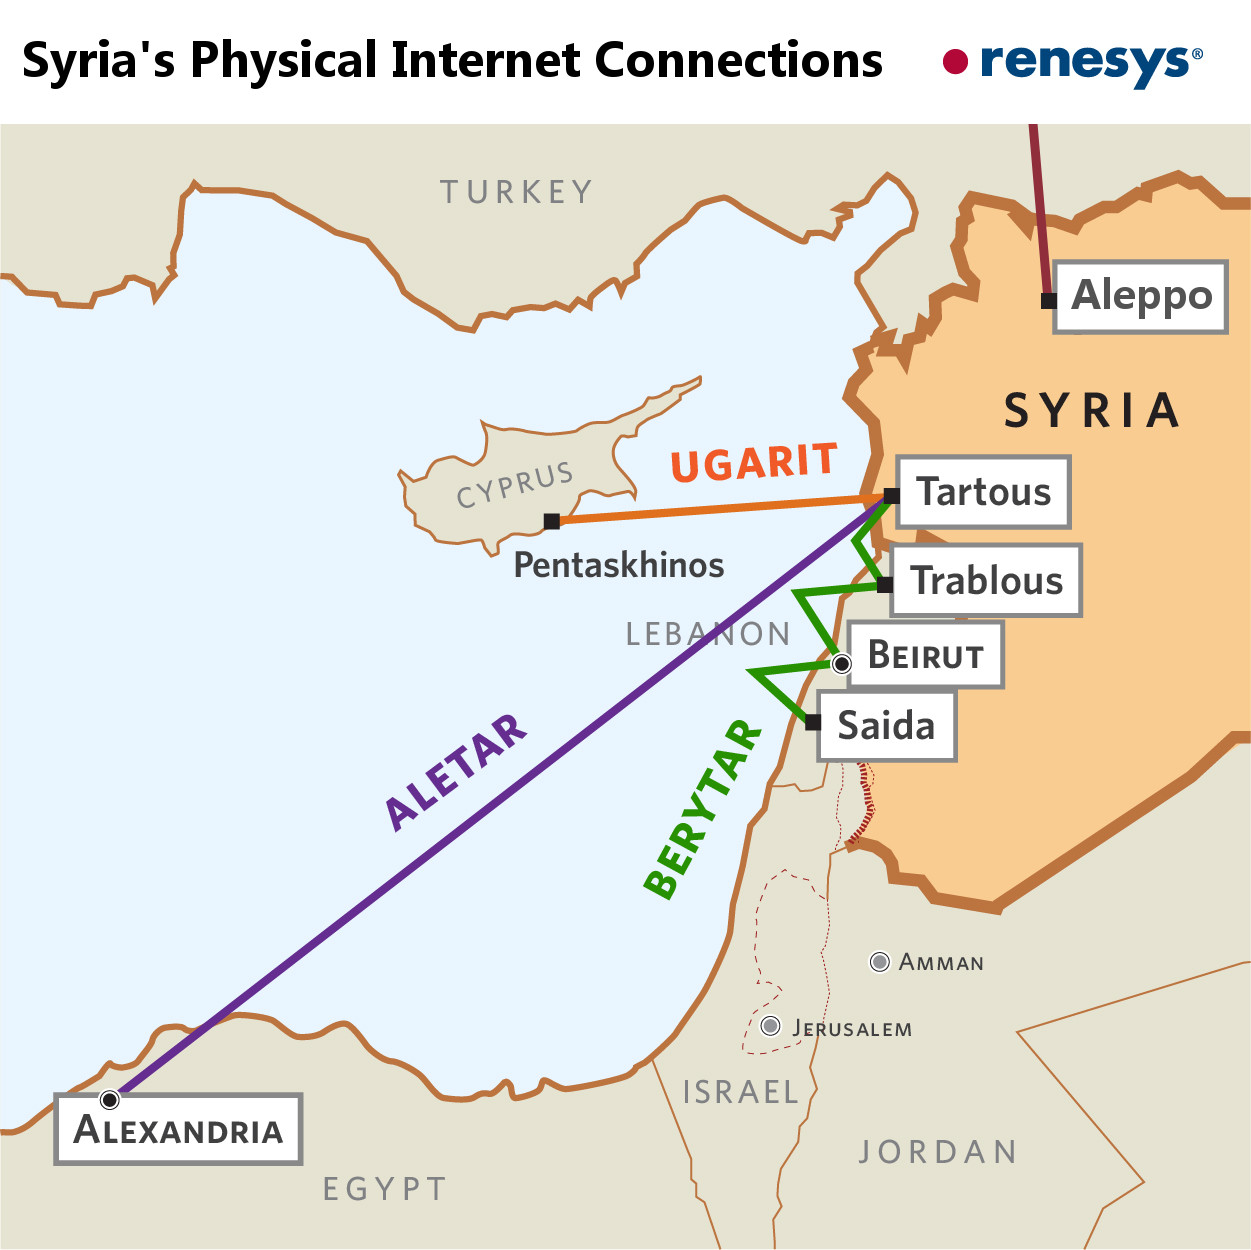 40 Maps That Explain The Internet Little Giant Power Cord Wiring Diagram Syrias Largest City Dropped Off In 2013